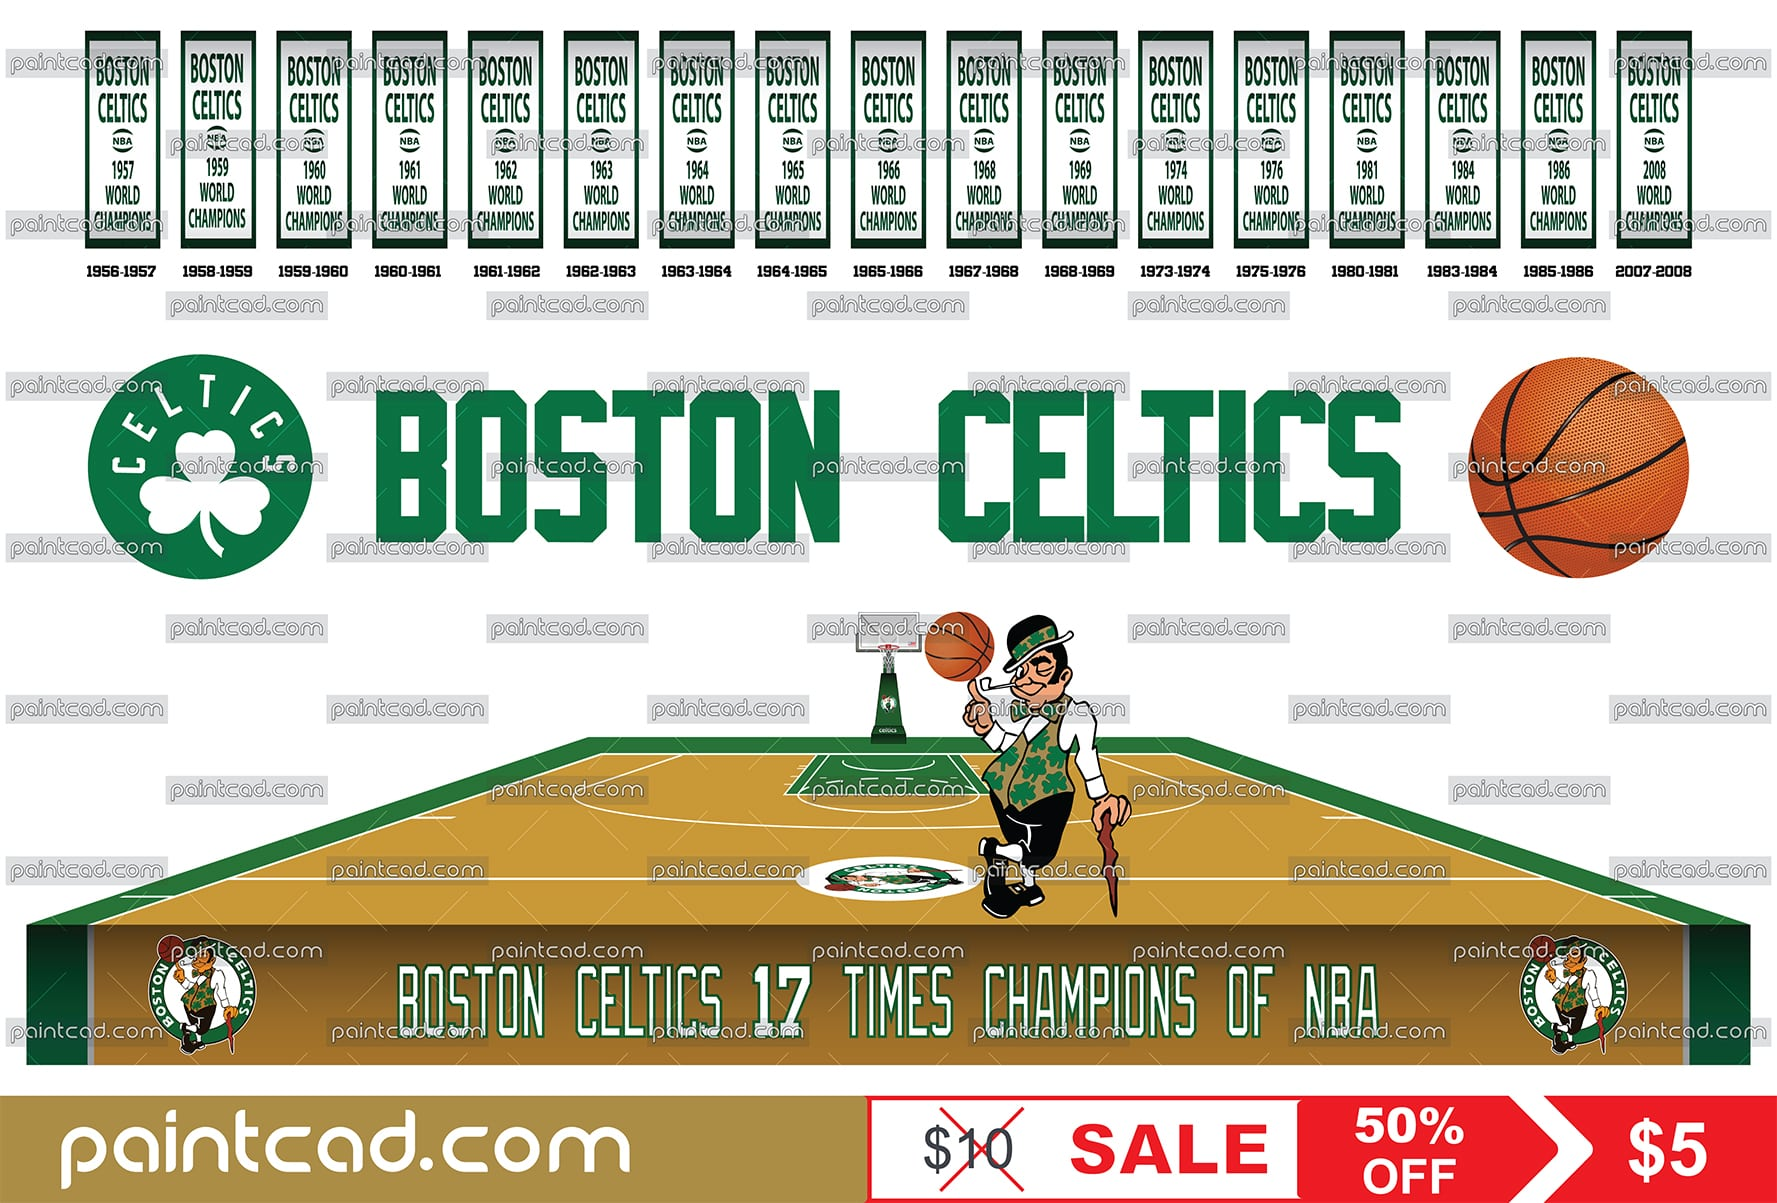 Boston Celtics championship banners, team logo and home court - vector illustration